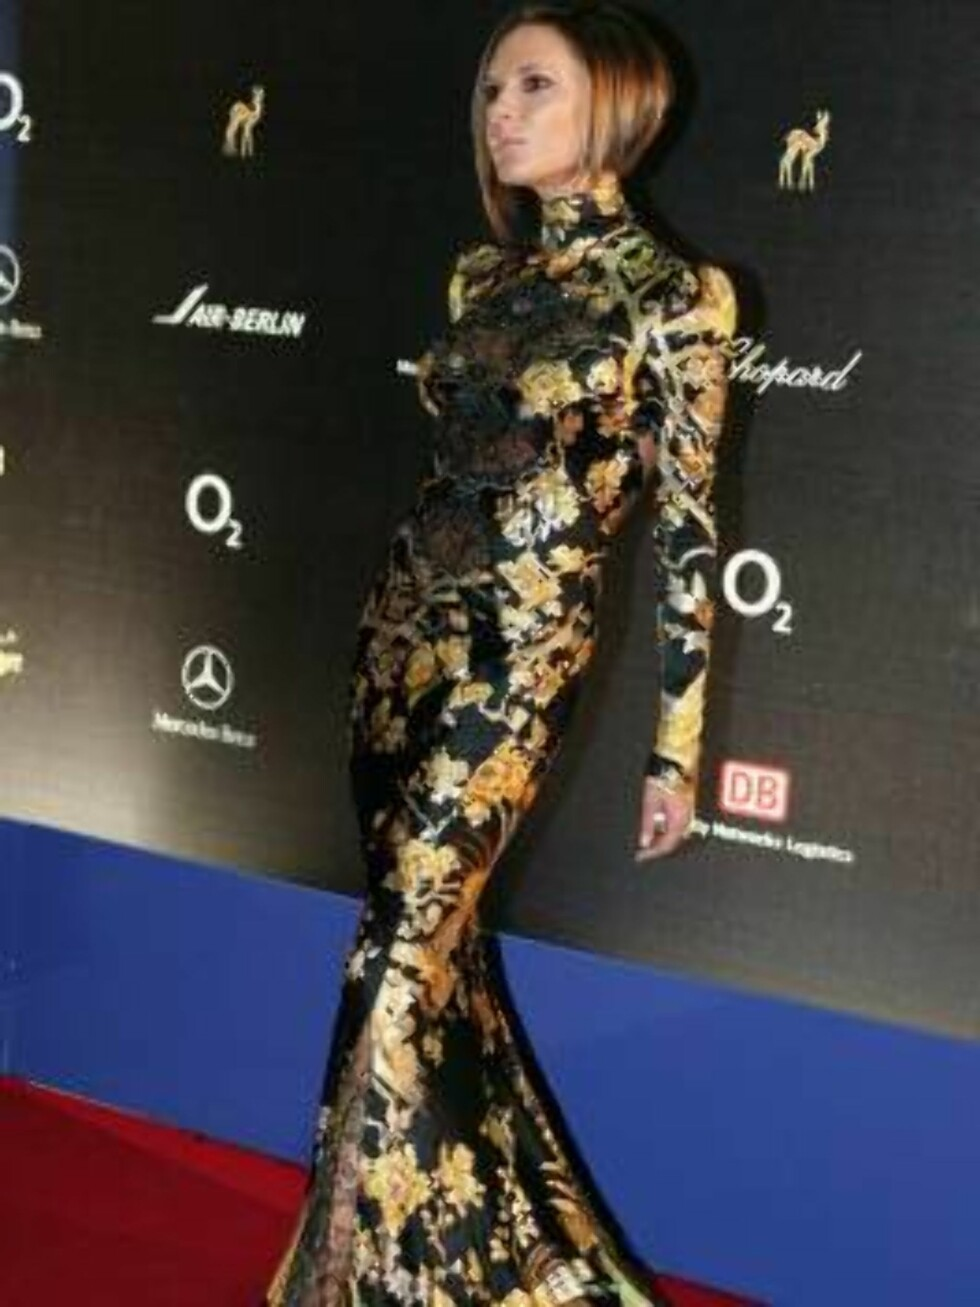 STUTTGART, GERMANY - NOVEMBER 30:  Victoria Beckham attends the 58th annual Bambi Awards at the Merceds-Benz Museum on November 30, 2006 in Stuttgart, Germany. Bambi is Germany's biggest and most important award show of the year.  (Photo by Ralph Orlowski Foto: All Over Press